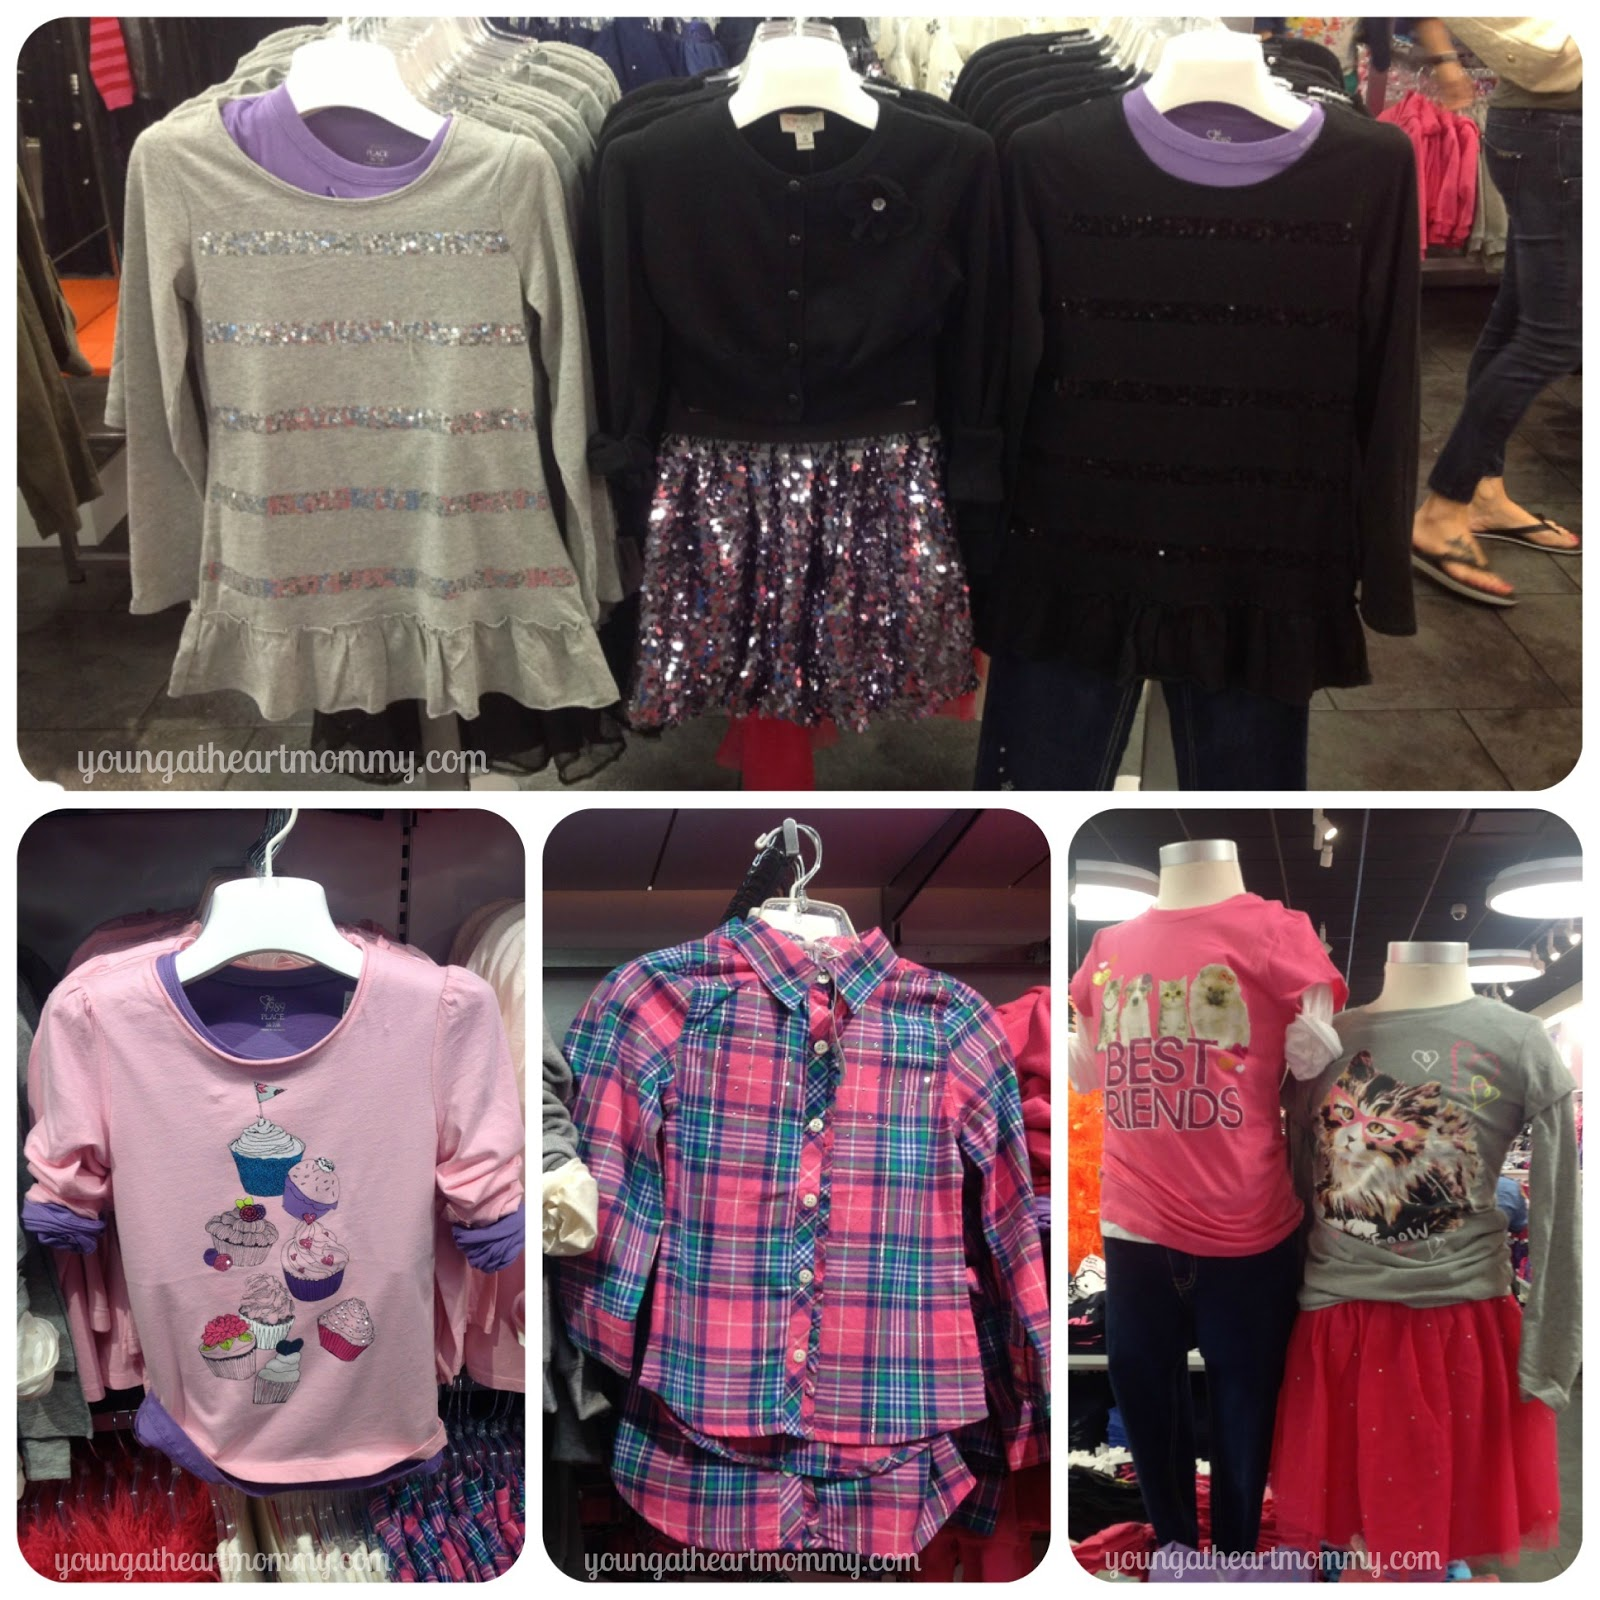 18a0e0bb4 New graphic t's, fleece, hoodies, and plaid shirts with a touch of sparkle  were also showcased in the little girl's section. I am always overwhelmed  with ...